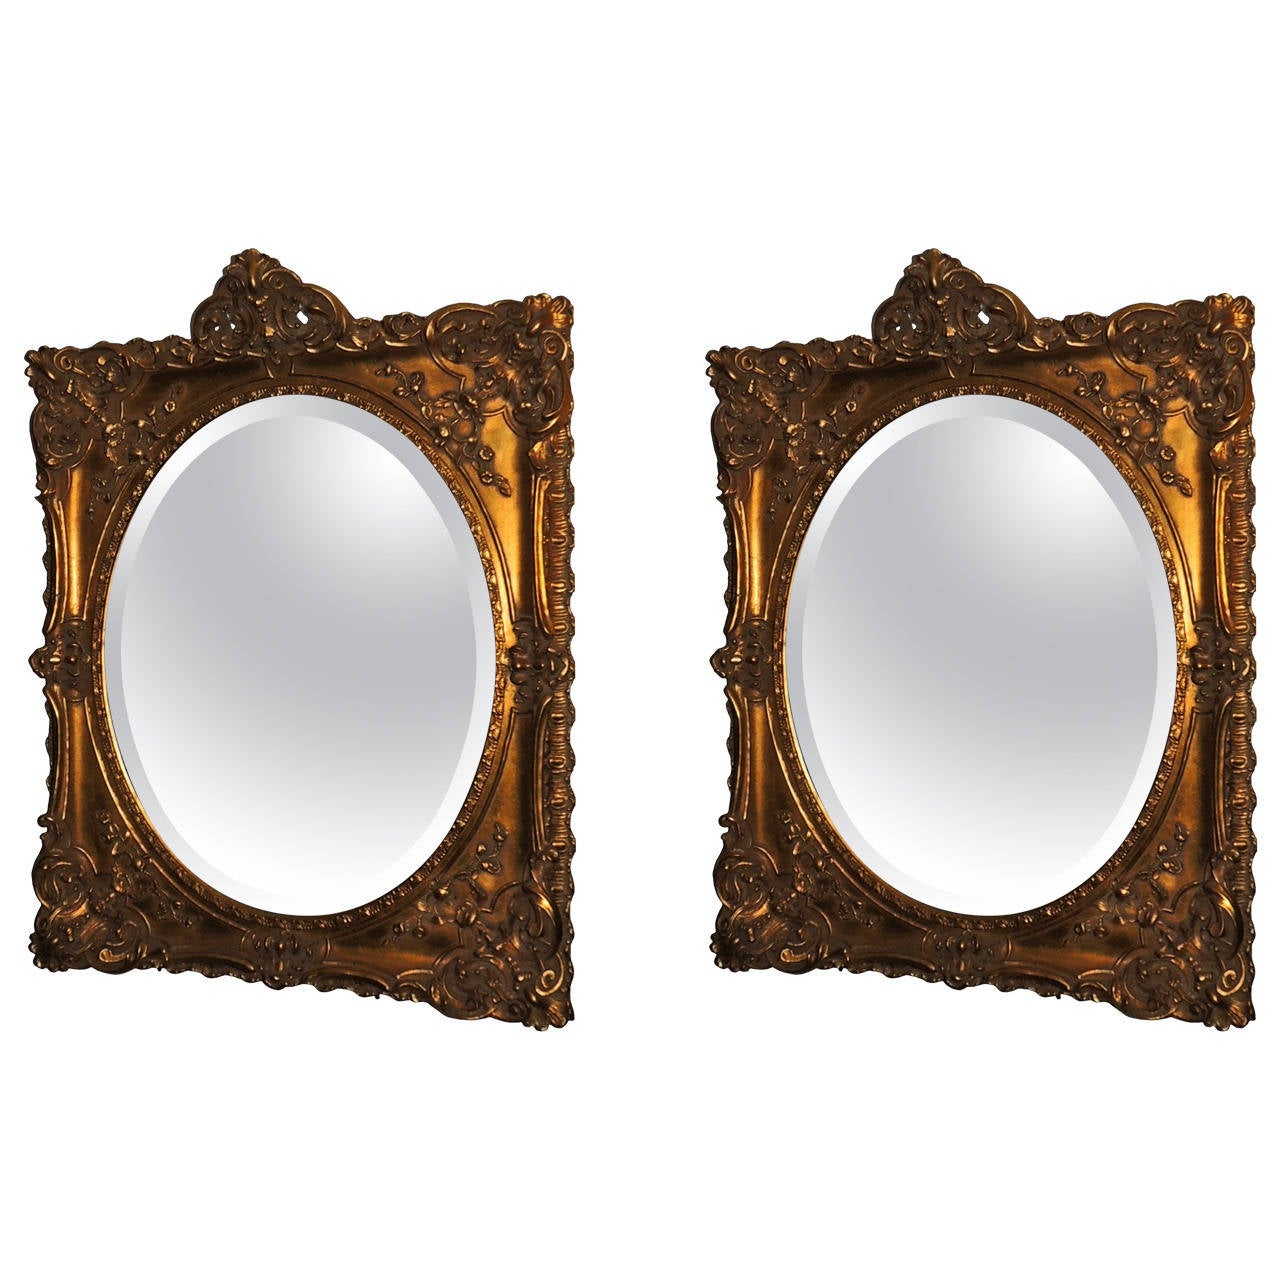 antique oval mirror frame. Elegant Pair Of Antique Oval Bevelled Regal Mirrors In Carved Giltwood Frame For Sale Mirror E